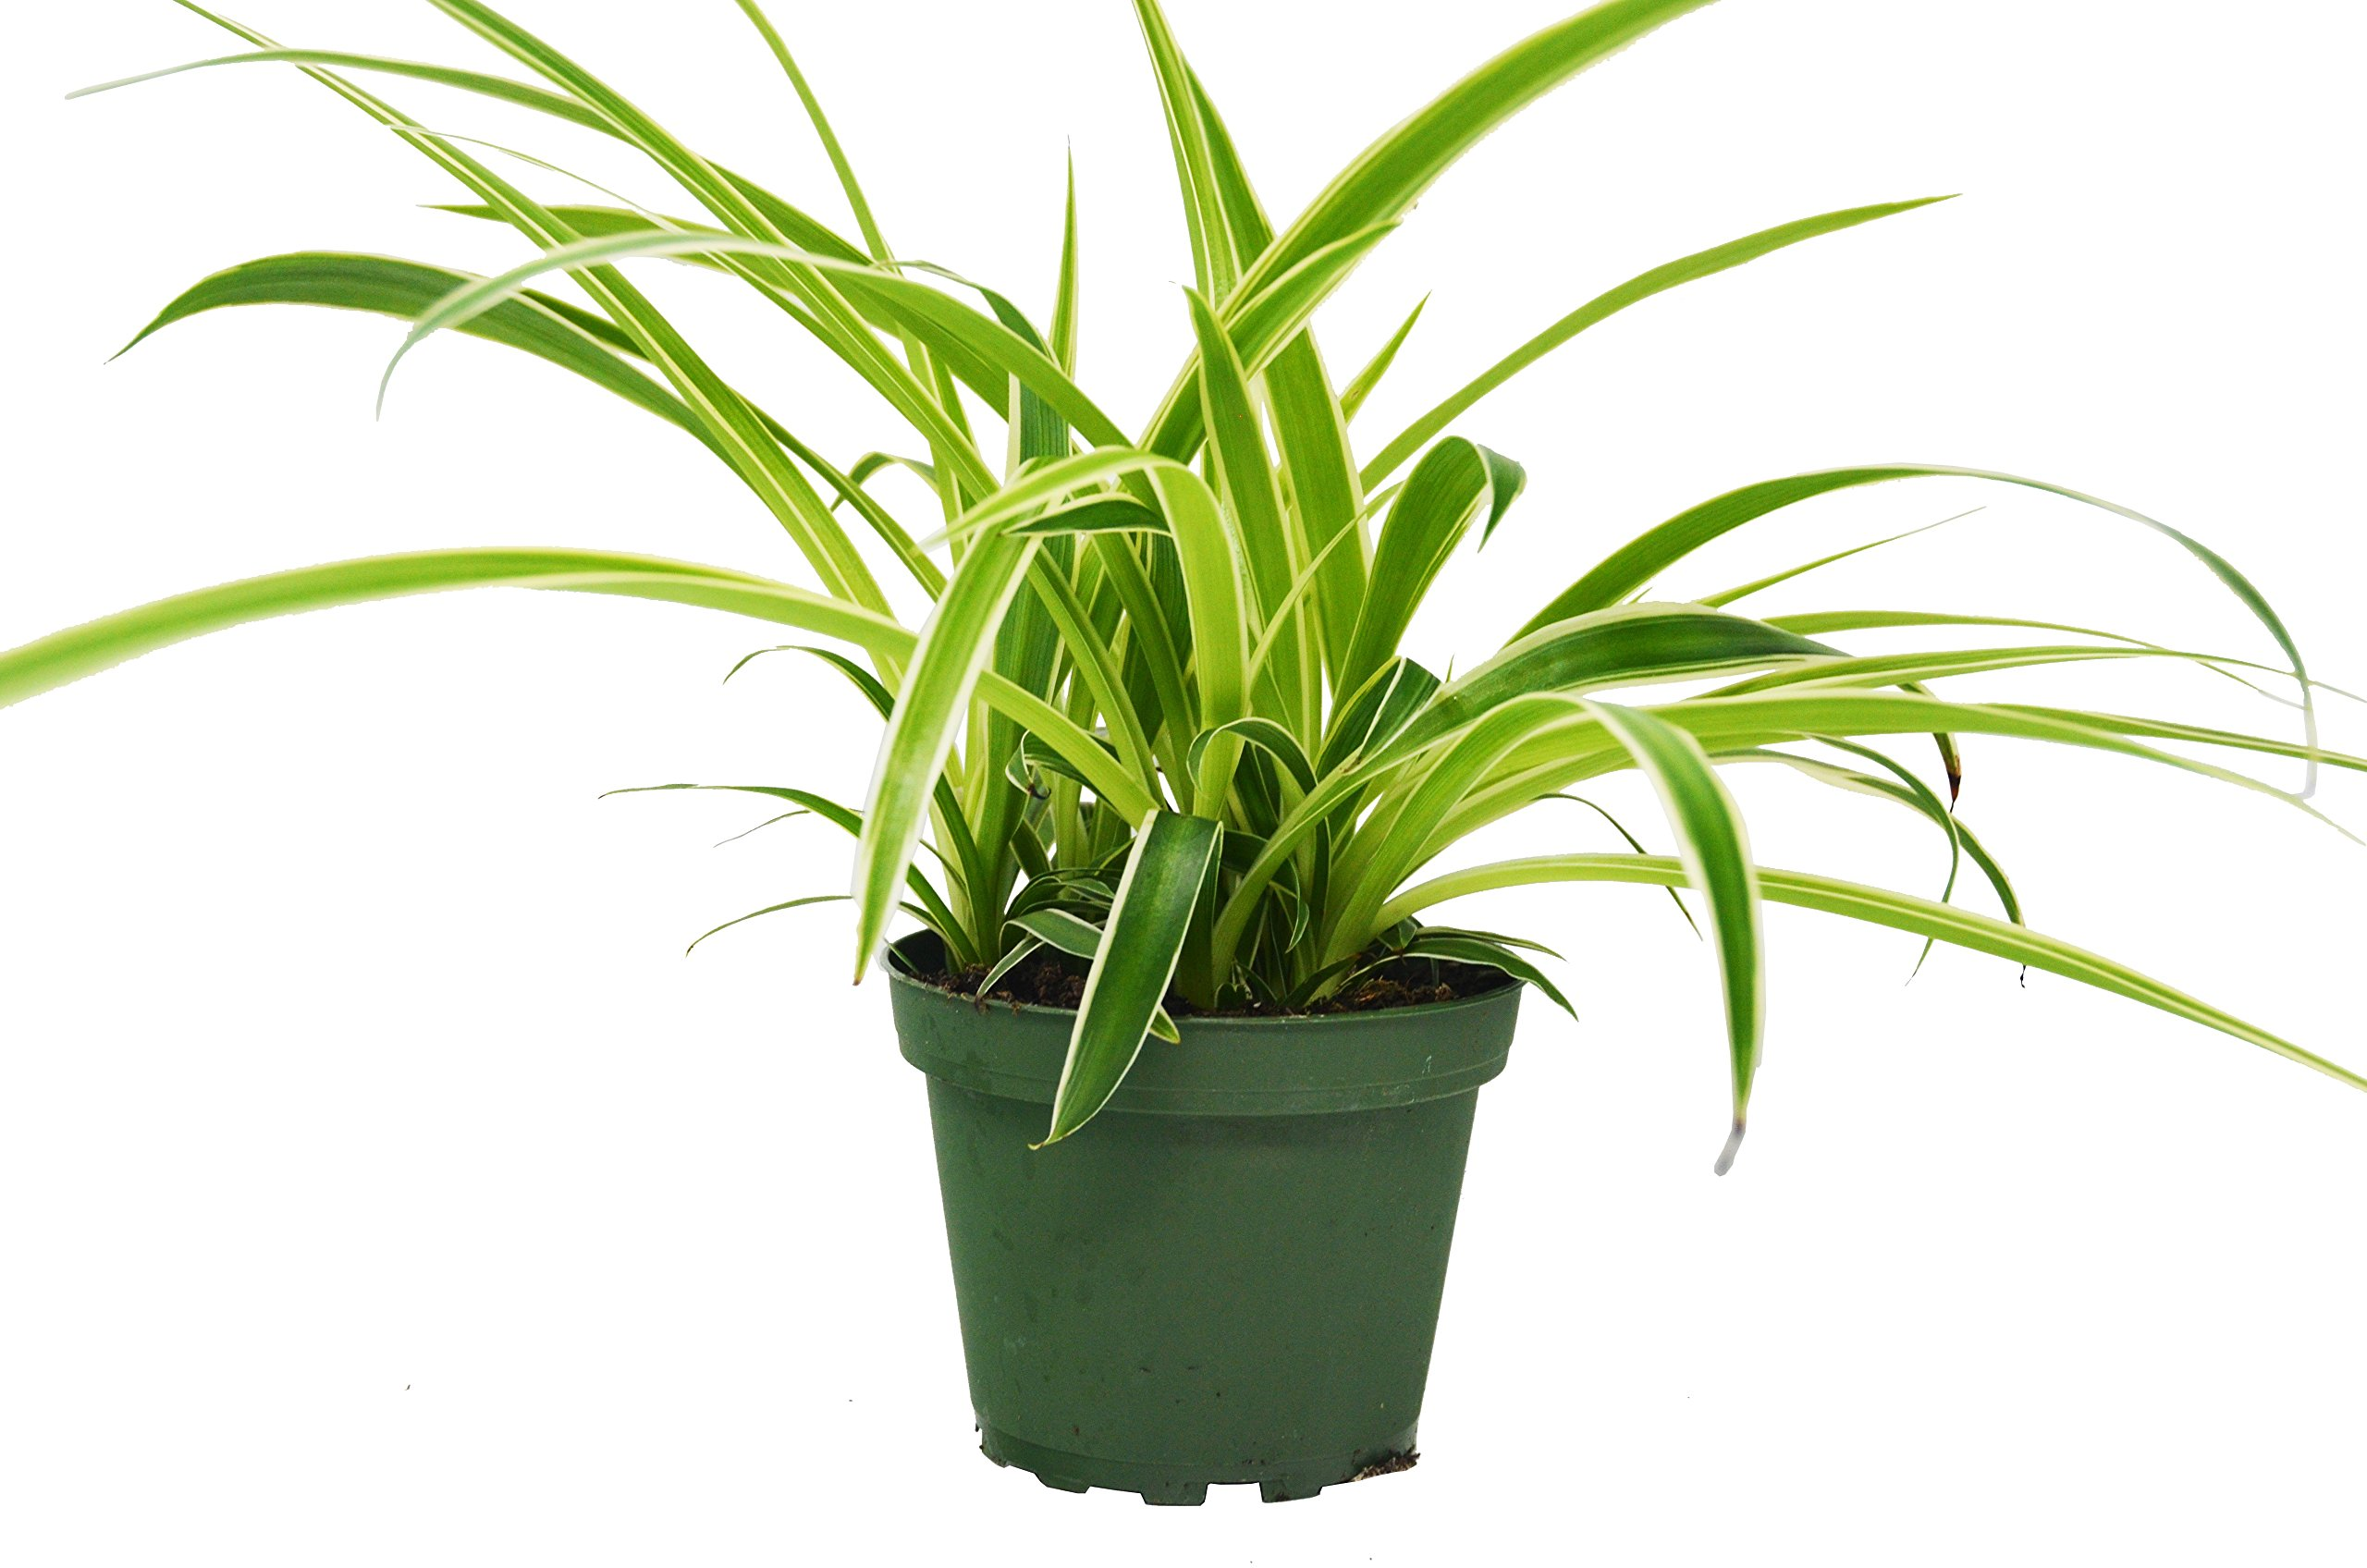 Spider Plant 'Reverse Variegated' - Chlorpohytum - Live House Plant - FREE Care Guide - 4'' Pot